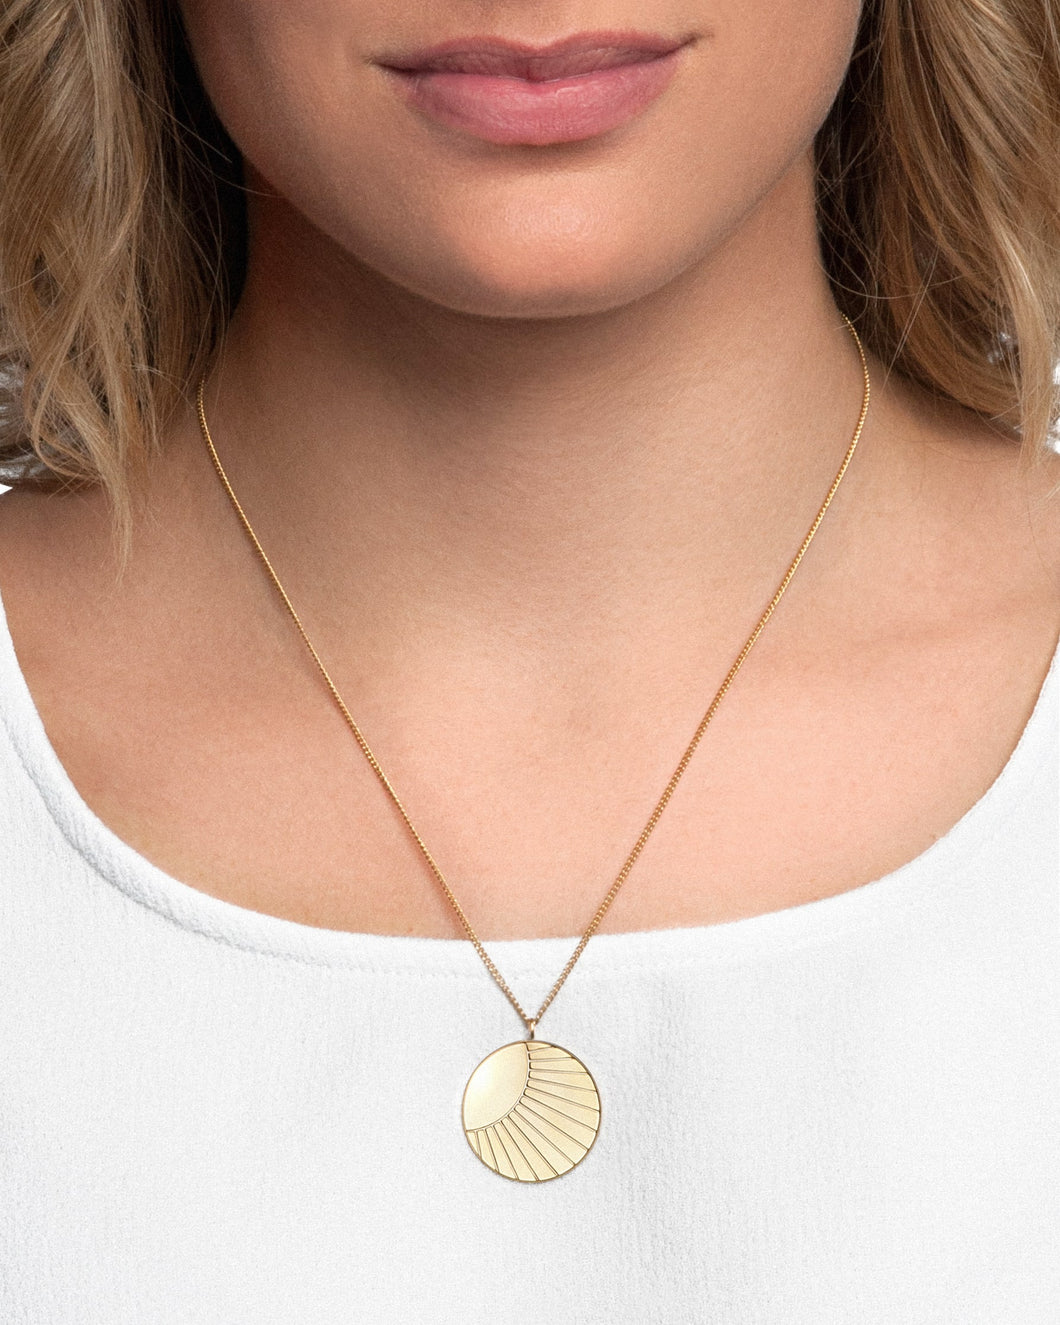 24K Gold Plated Sterling Silver Medium SOL Coin Necklace - CELESTE SOL Jewelry